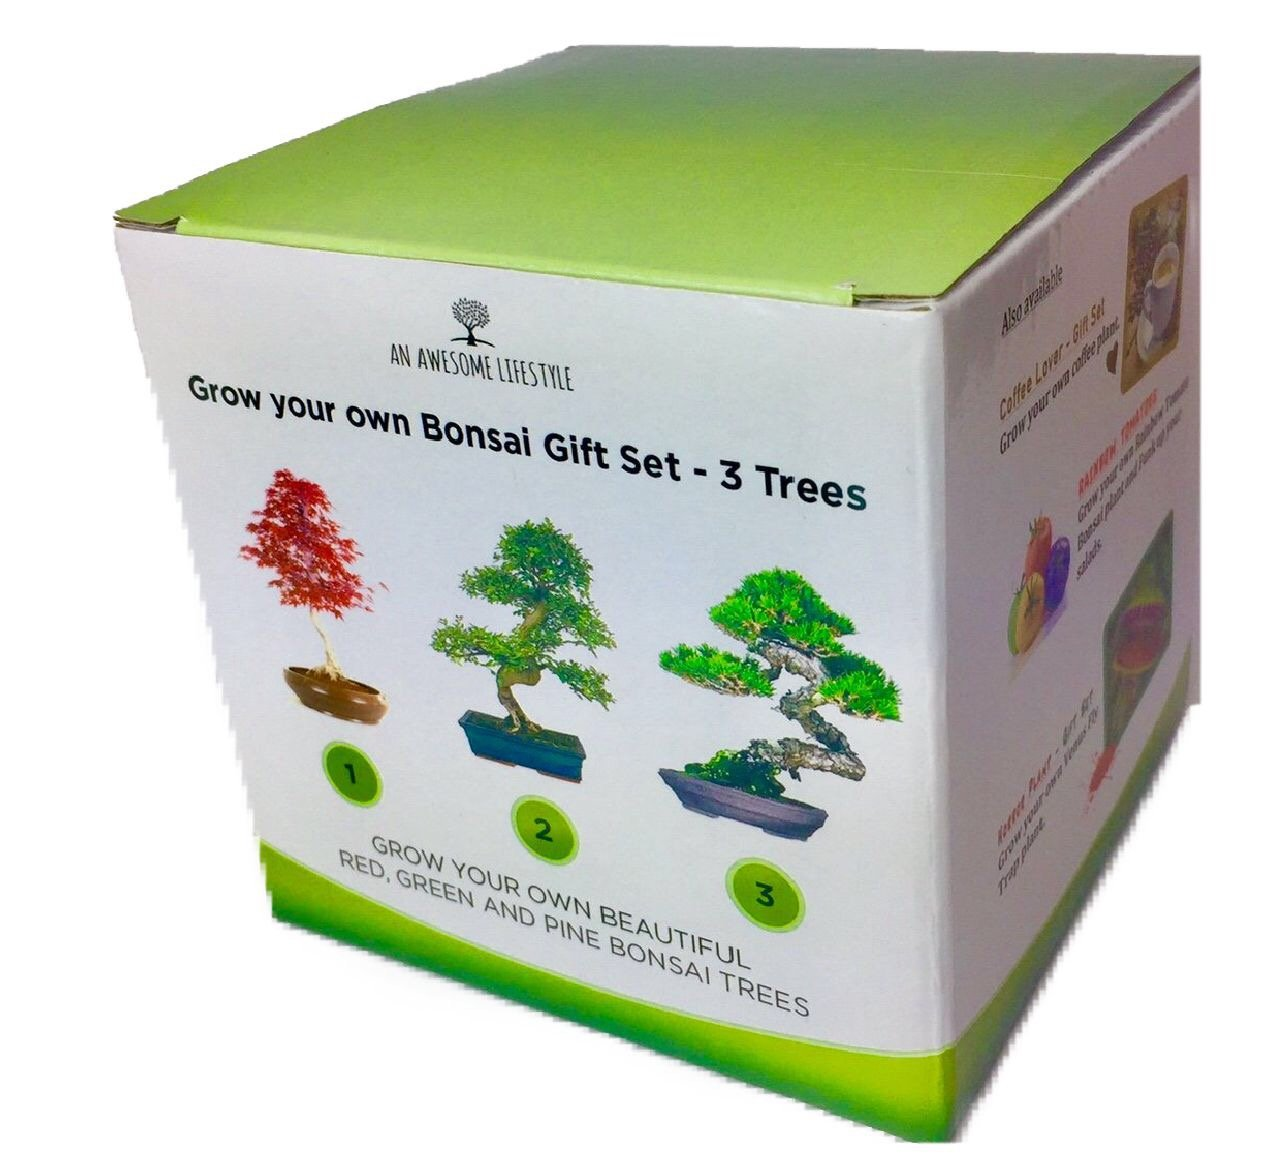 BONSAI TREE - GROW YOUR OWN 3 TREES GIFT SET - Grow Your Own 3 Bonsai Tree. Grows One Red Maple Bonsai, One Pine and One Sweet Gum Bonsai tree seeds. Full bonsai tree kit indoors or out, Zen Garden. Includes everything you need, from biodegradable growing